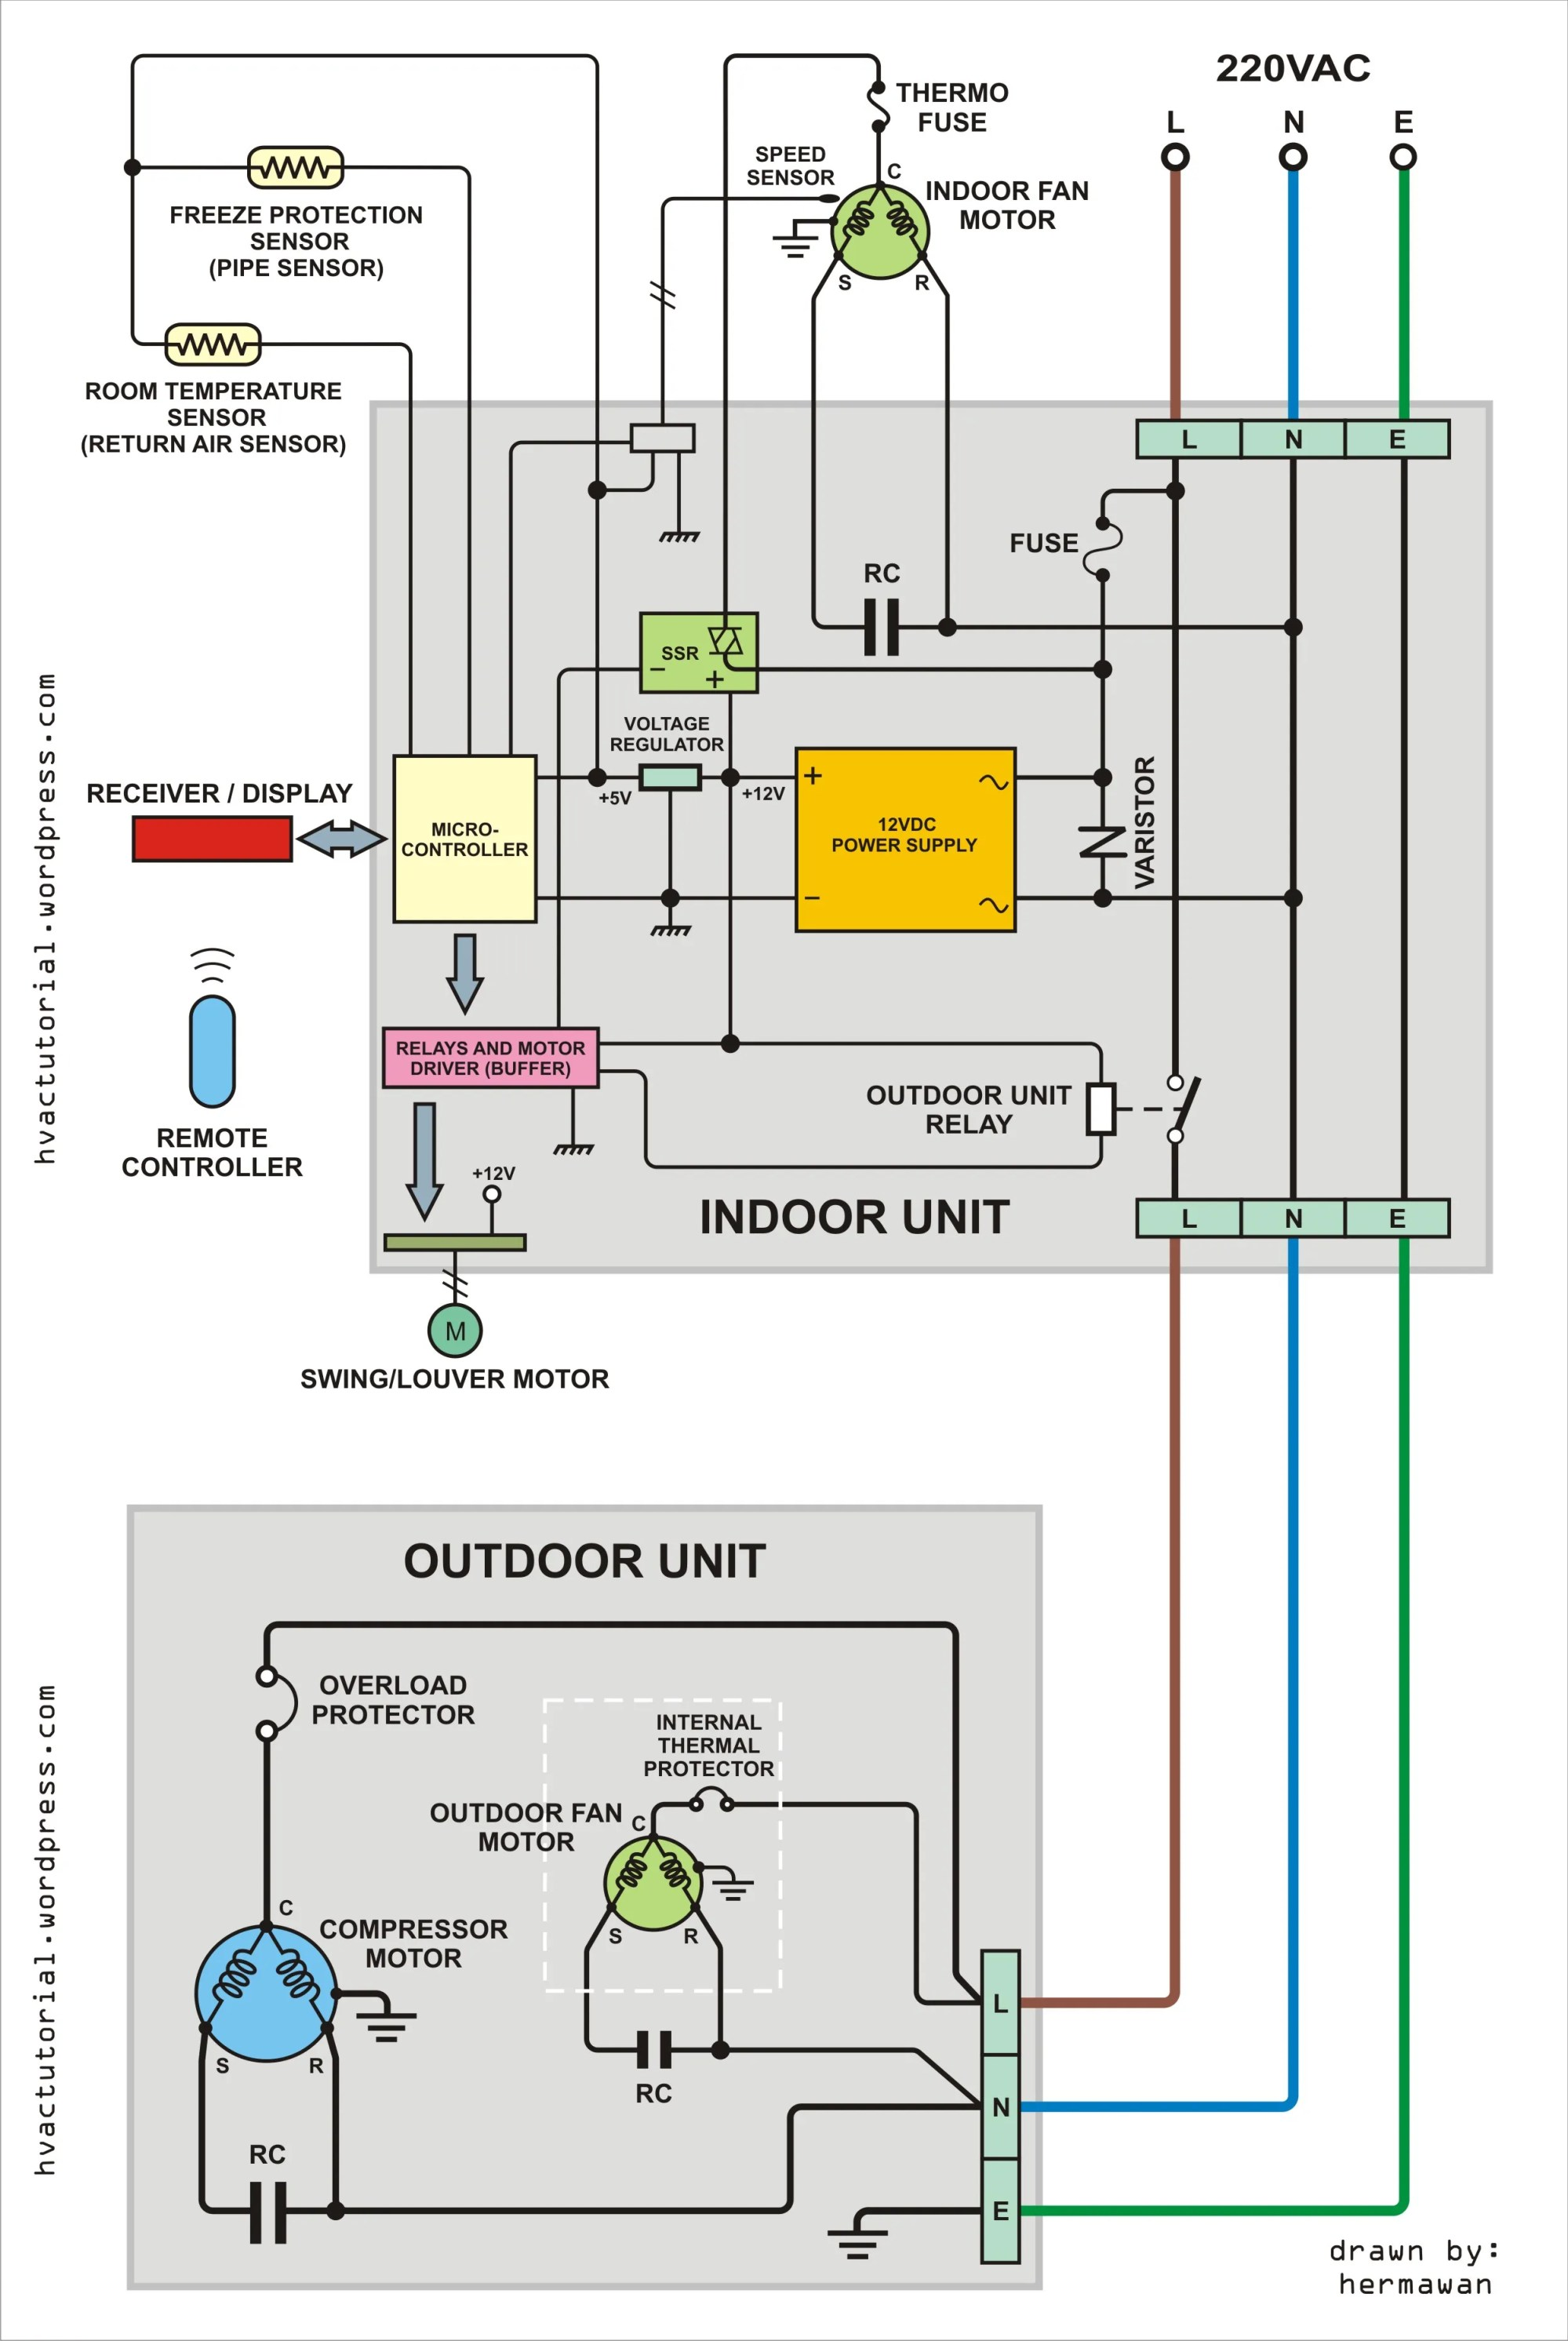 hight resolution of split air conditioner wiring diagram hermawan s blog air conditioning wiring diagram 02 vnl volvo air